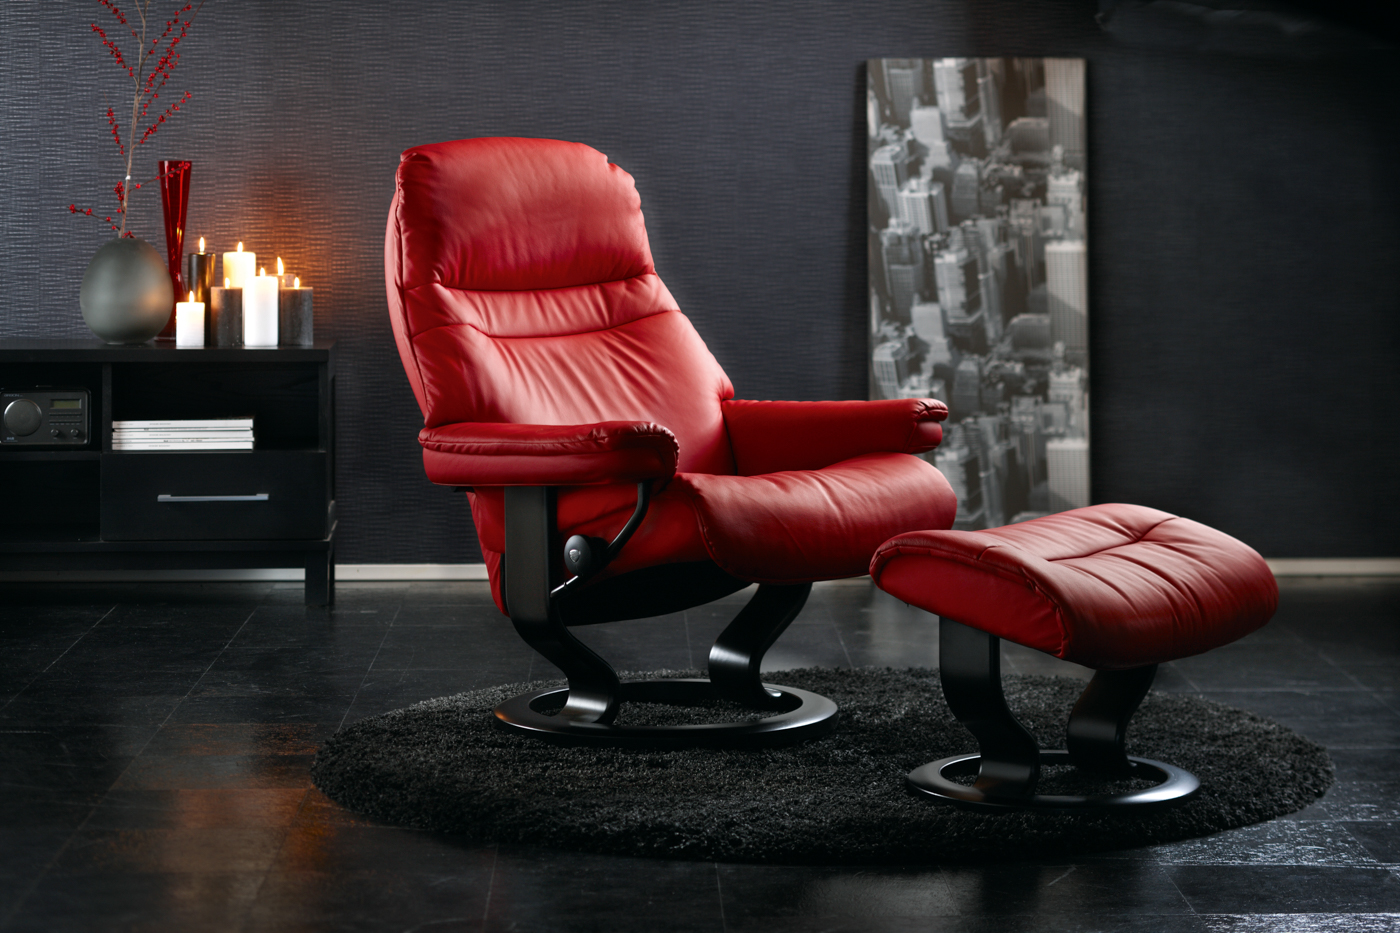 Stressless Nordic Legcomfort Ekornes Stressless Roanoke And Forest Va Reid S Fine Furnishings